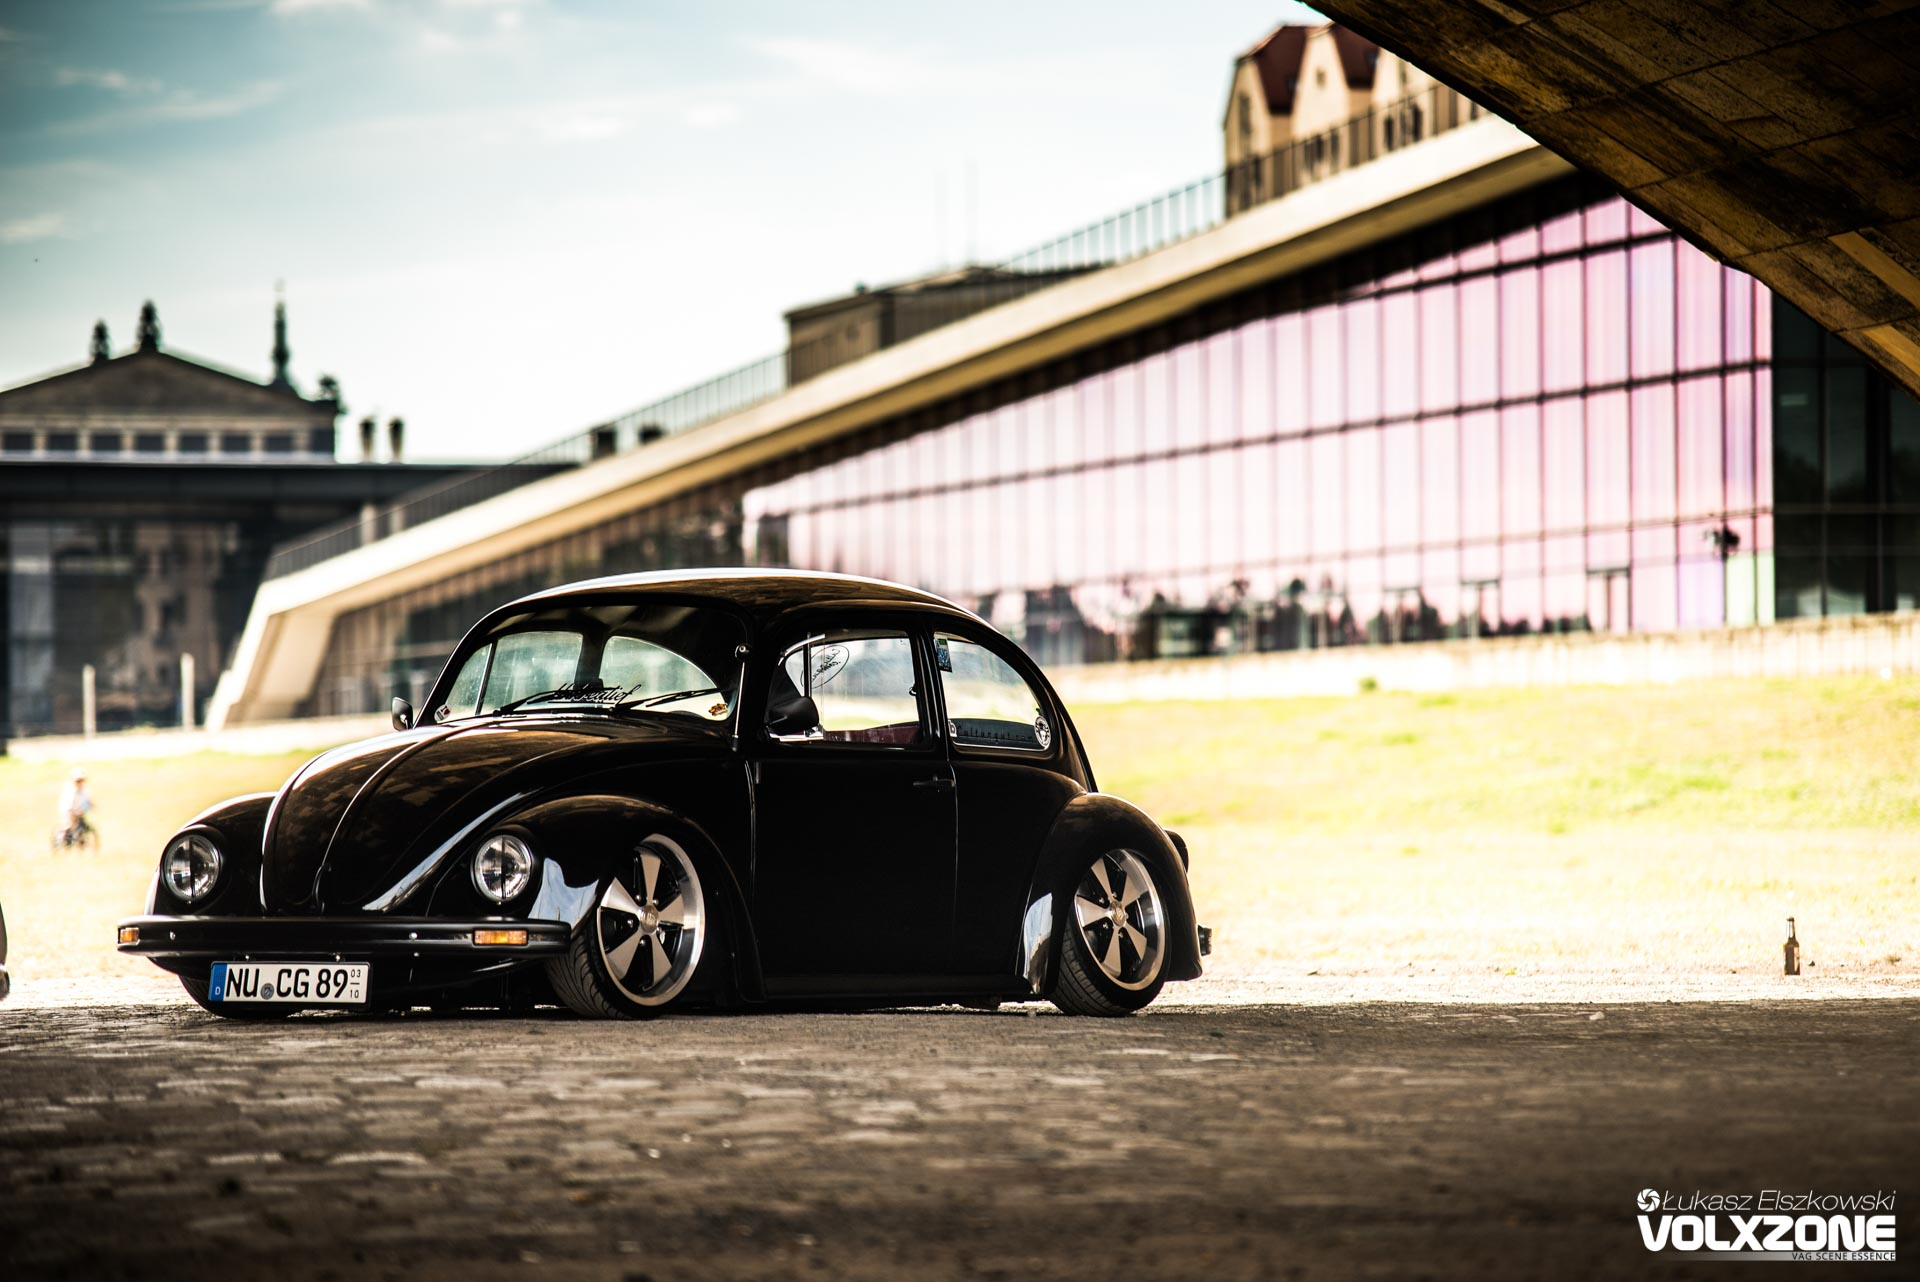 VW Beetle Oval 1200 Mex 1600